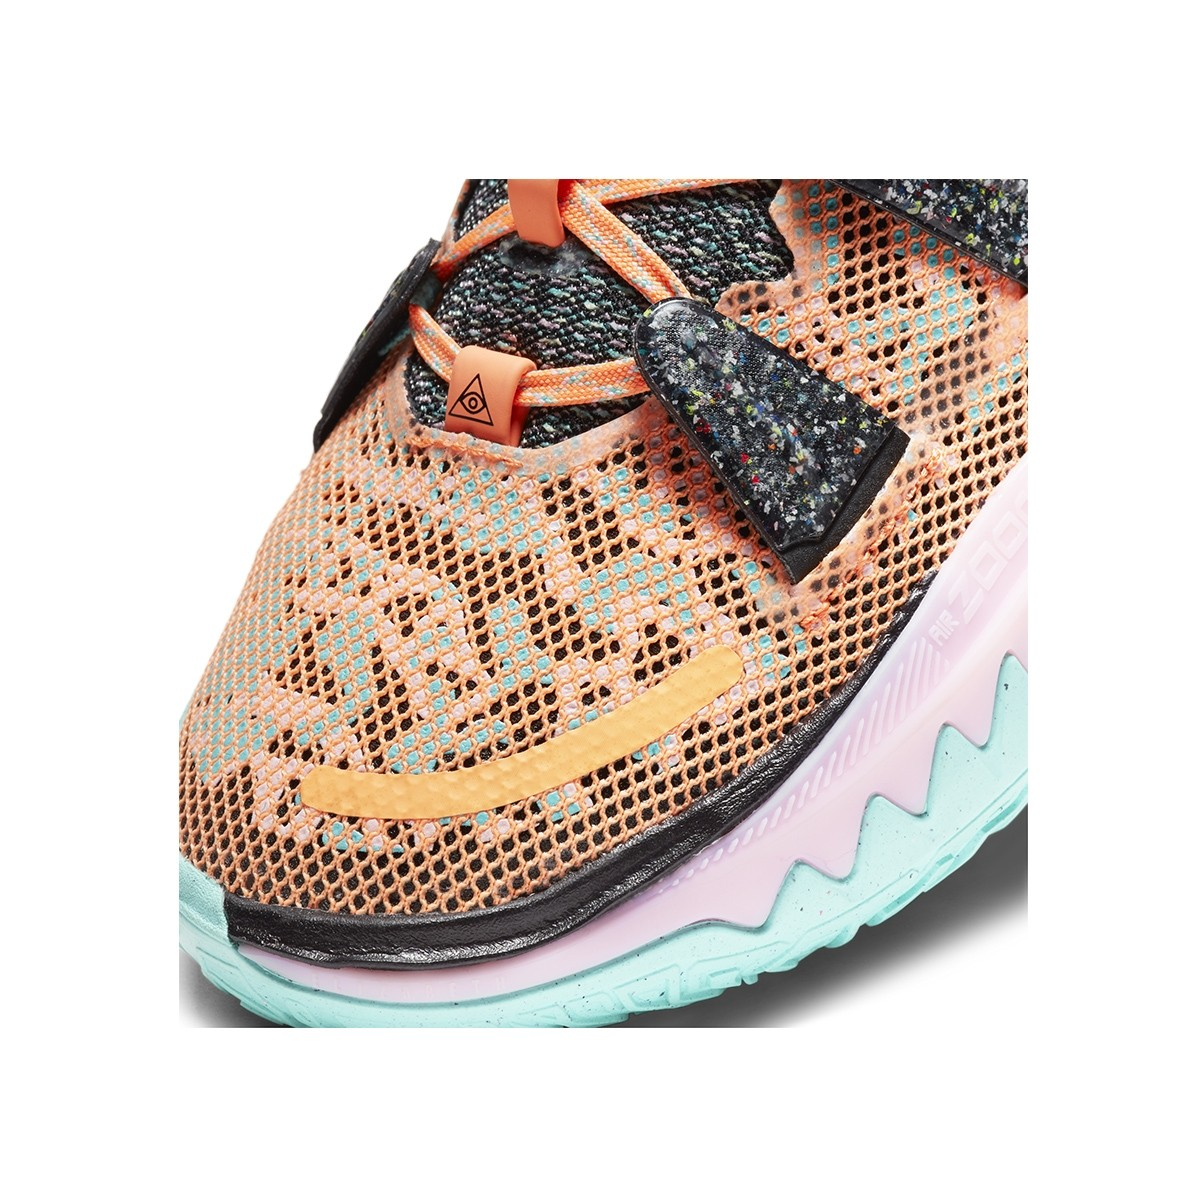 Nike Kyrie 7 'Play for the Future'-DD1447-800